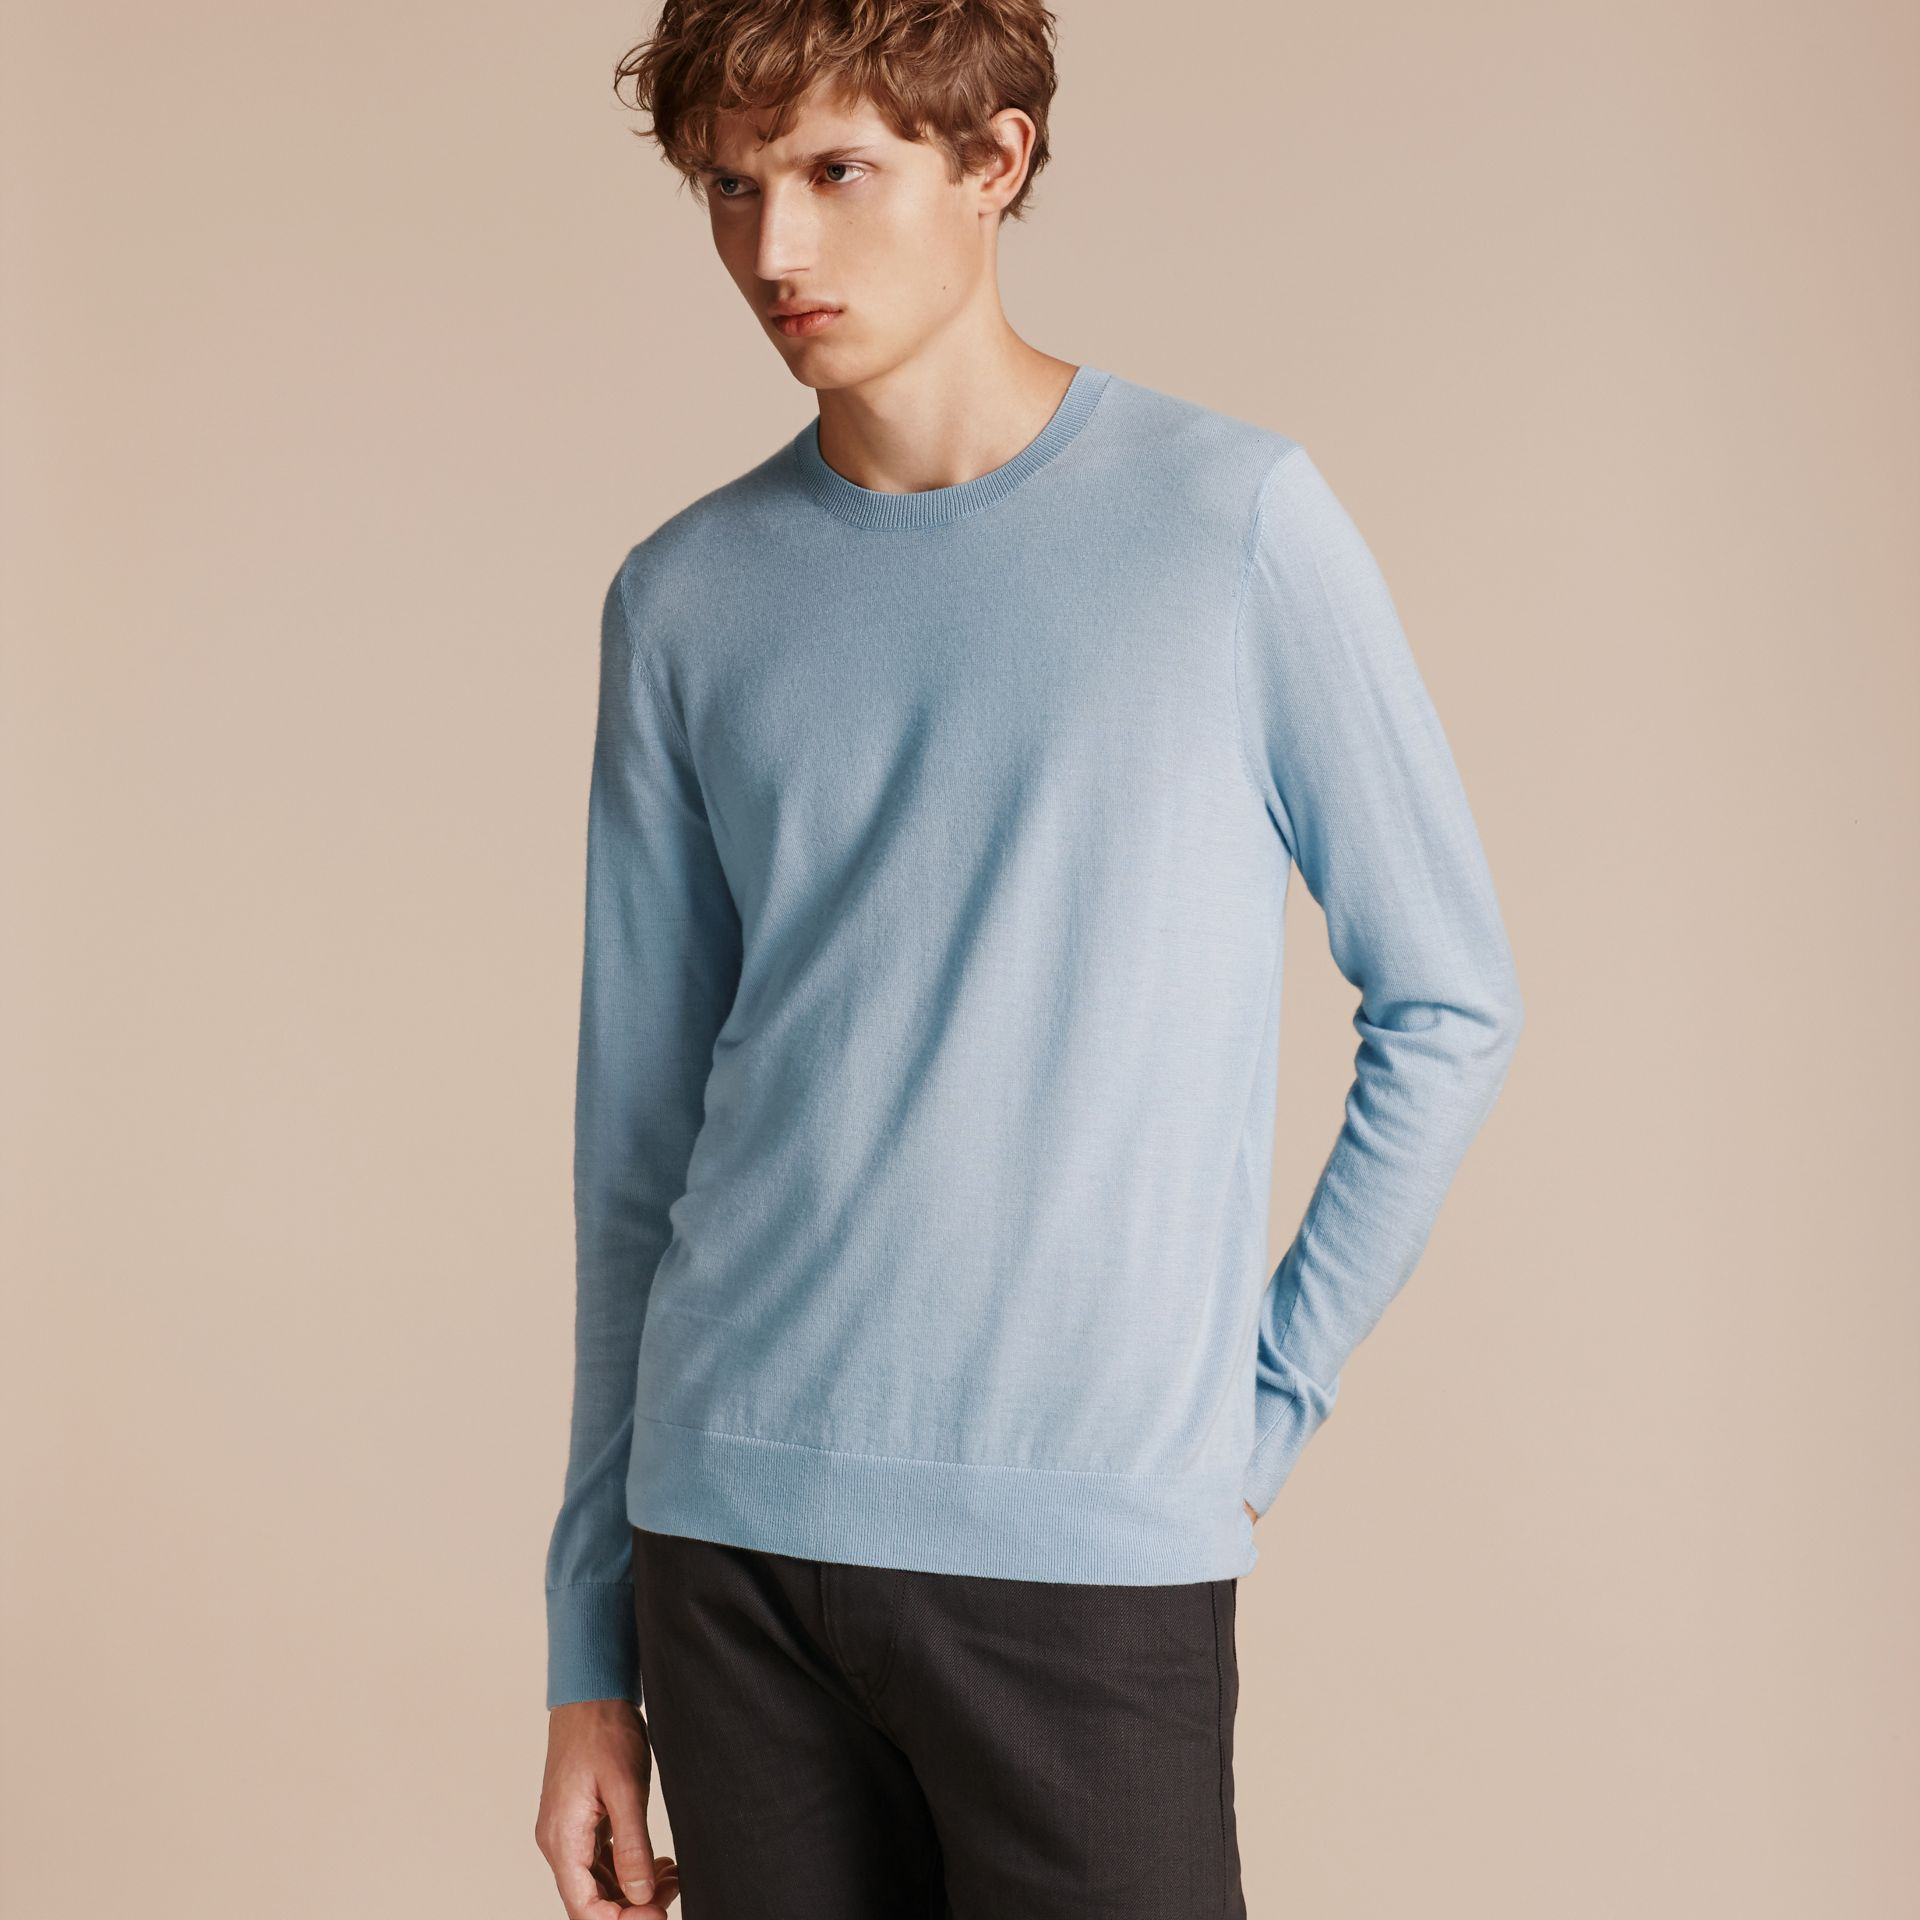 Check Jacquard Detail Cashmere Sweater in Light Blue - Men | Burberry - gallery image 5